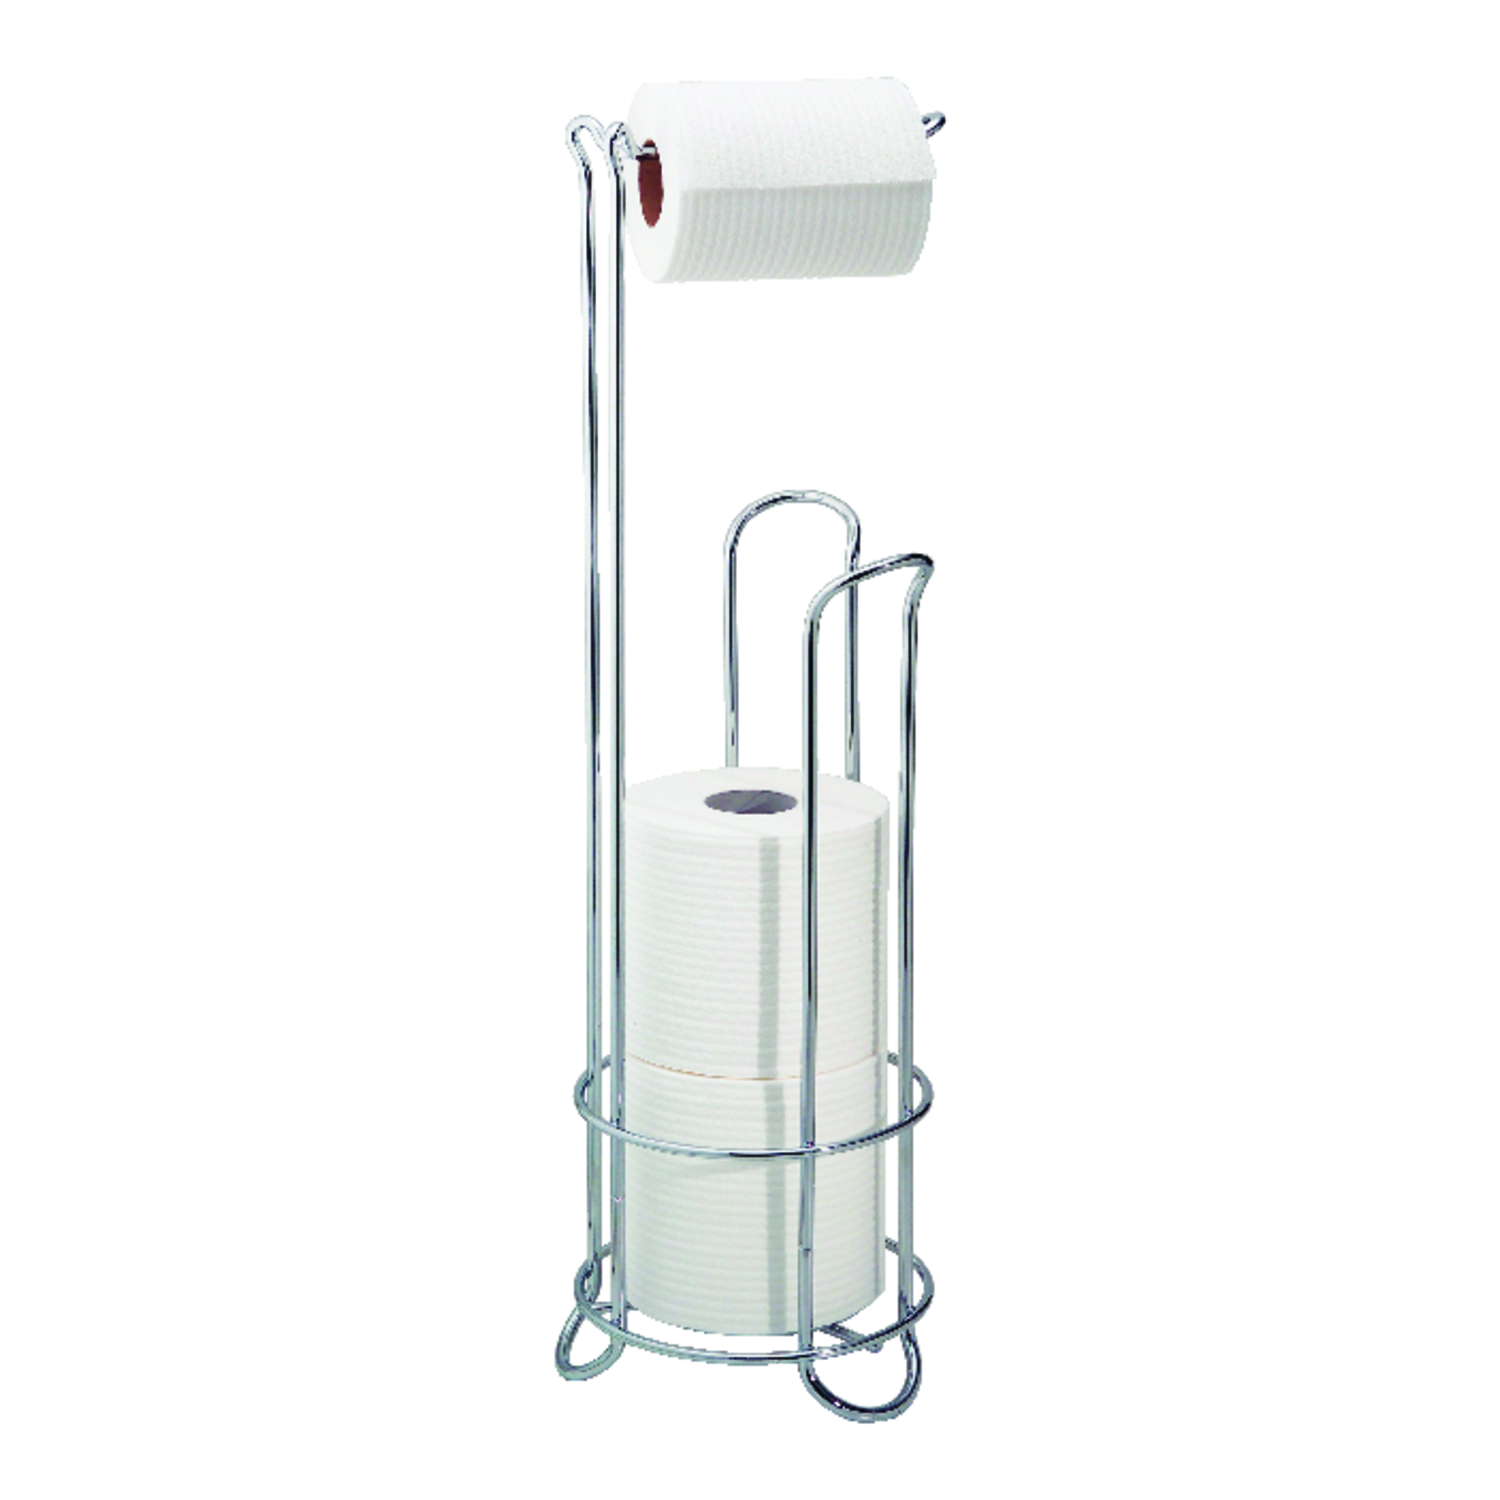 InterDesign  Chrome  Silver  Toilet Paper Holder